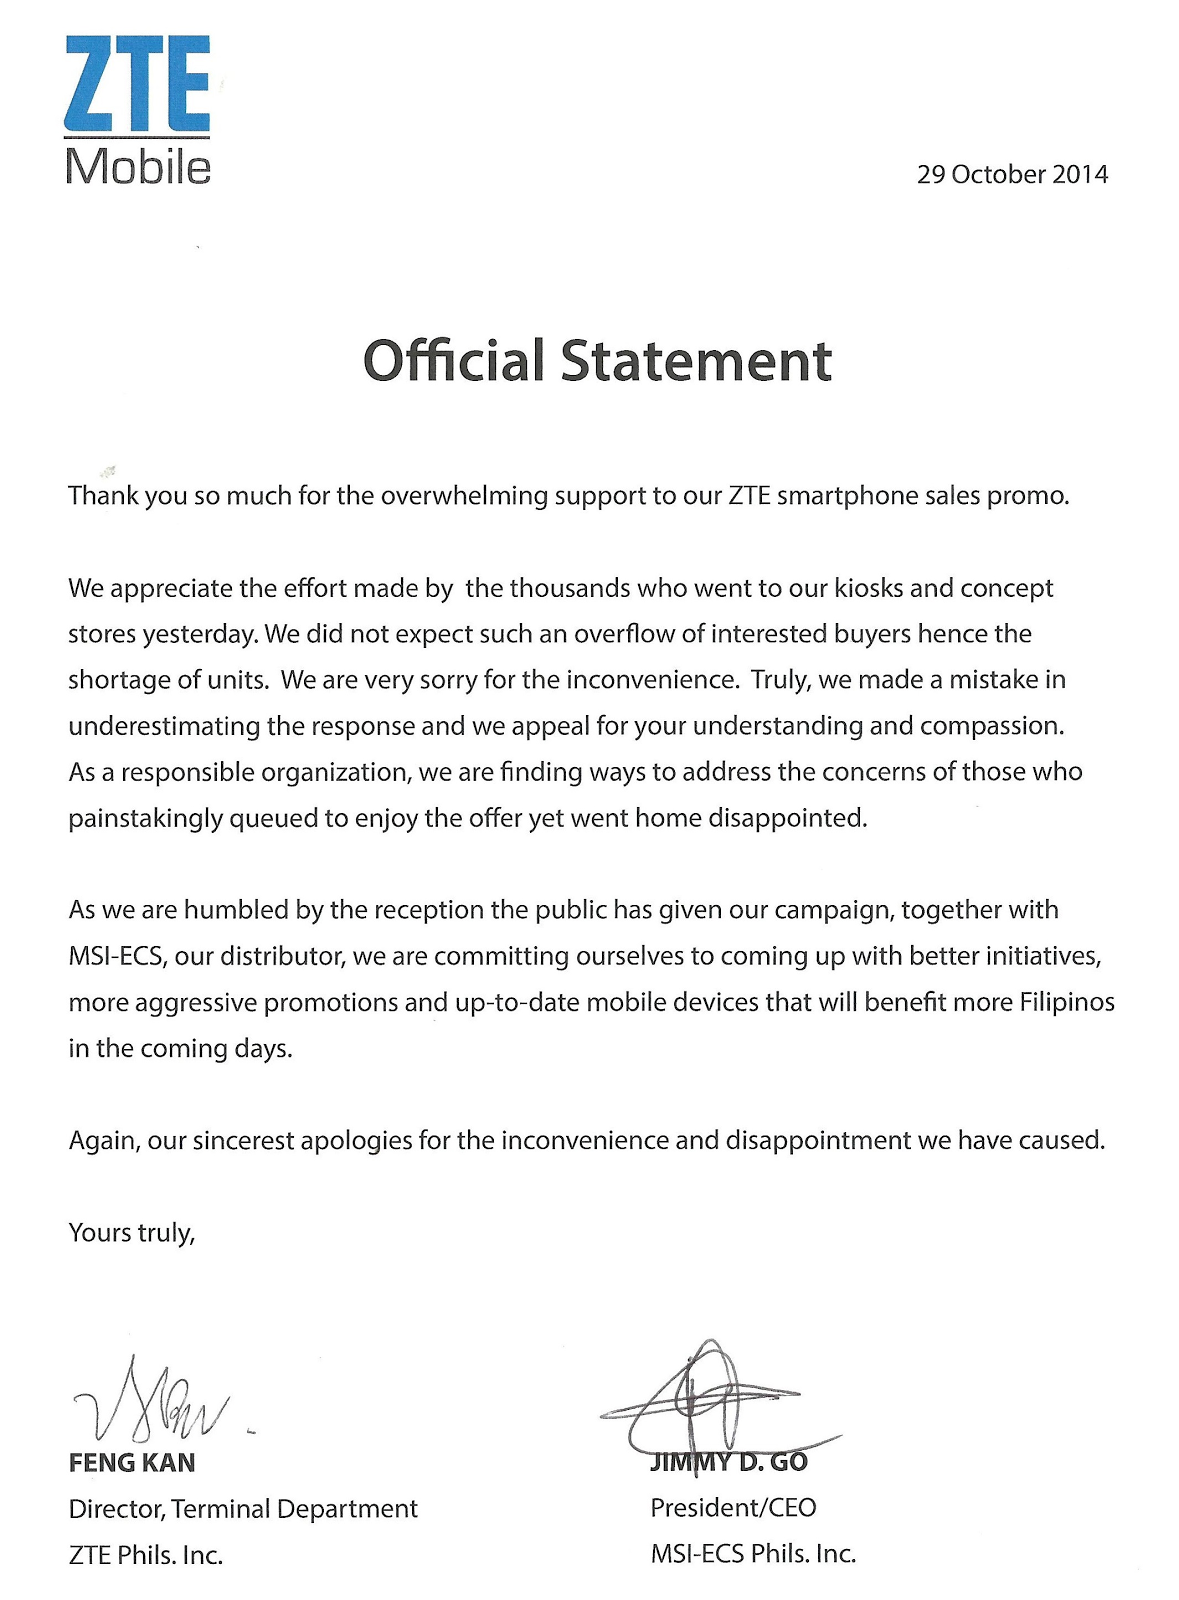 Official Statement from ZTE Mobile